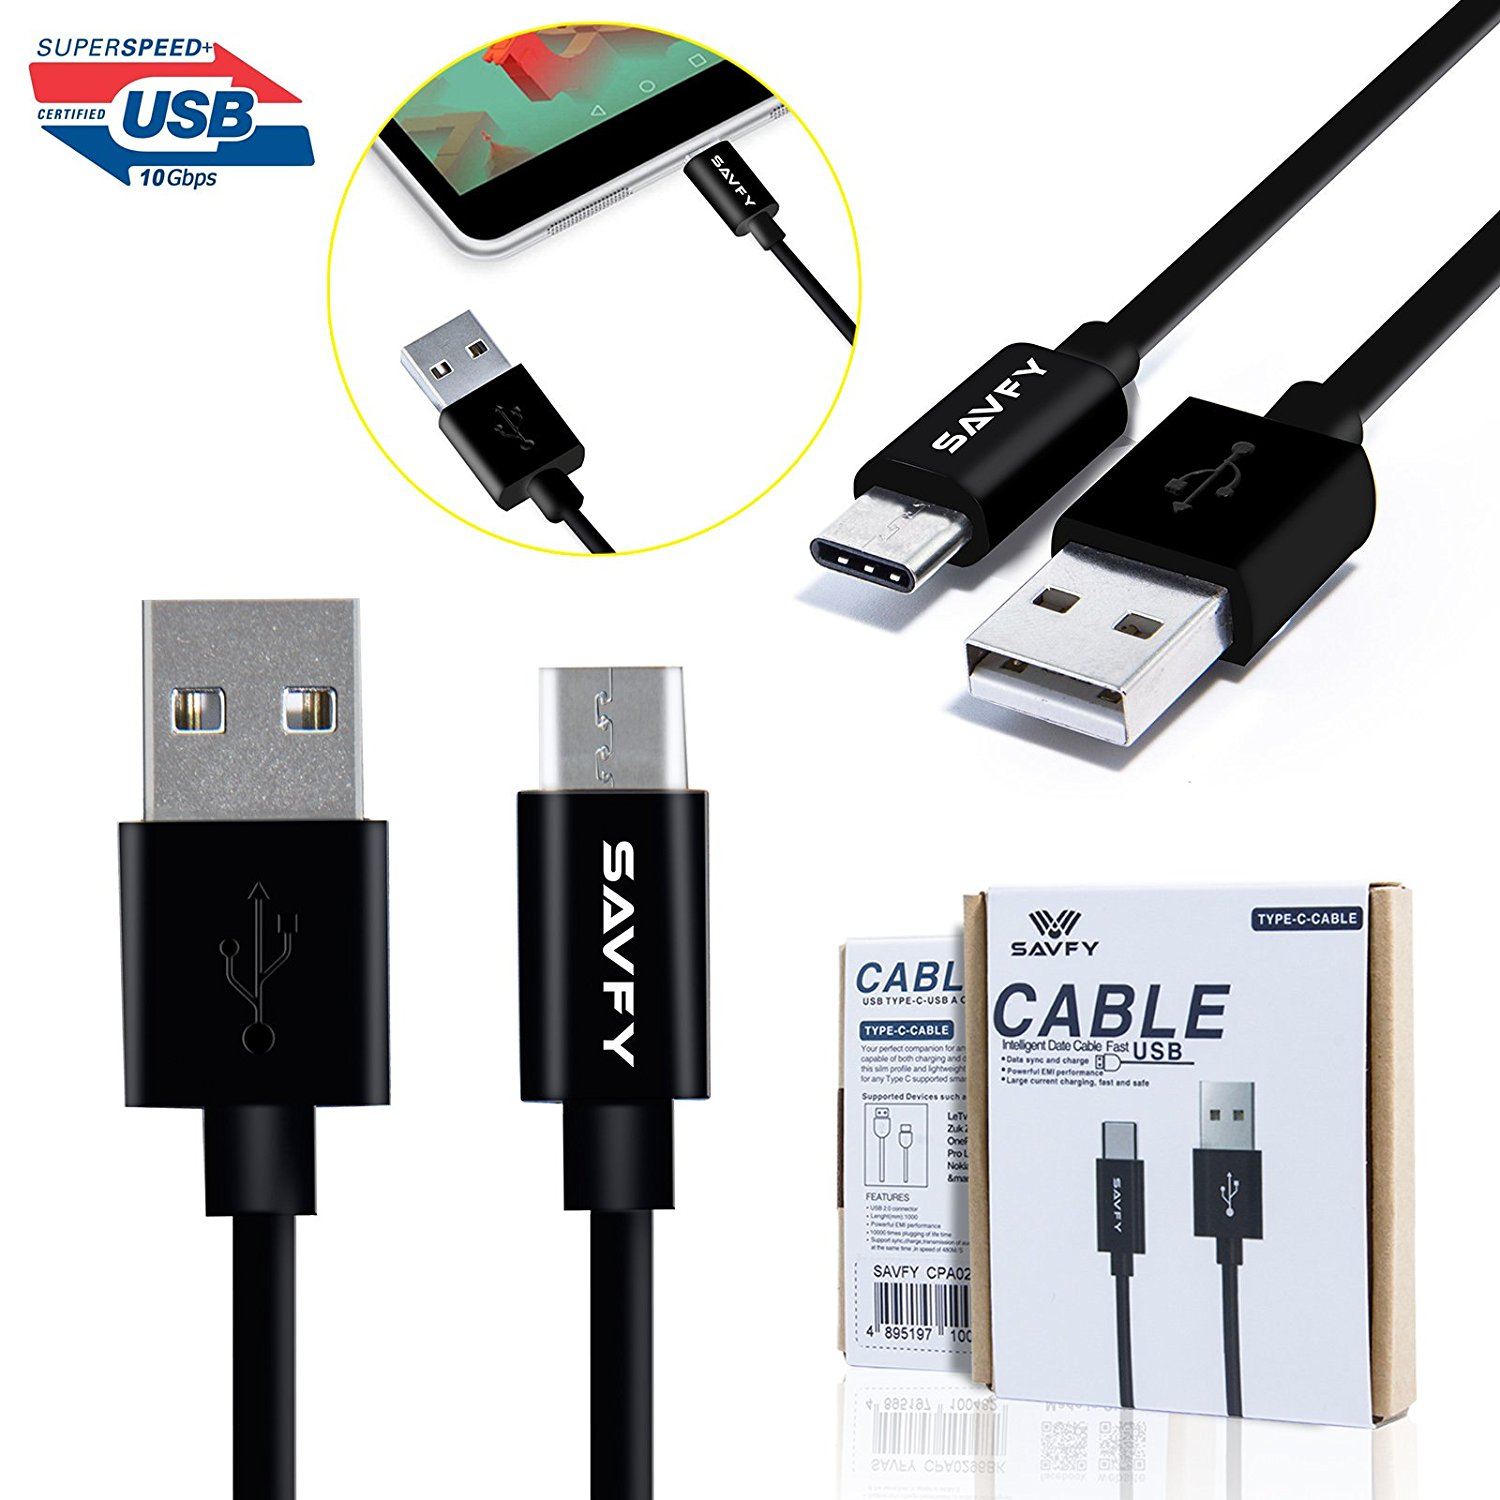 USB Type C Cable, SAVFY Type C to Type A [USB-C to USB-A] Data Charging Cable for Nexus 6P, Nexus 5X, Oneplus 2, MacBook, ChromeBook Pixel and More USB C Charger Devices